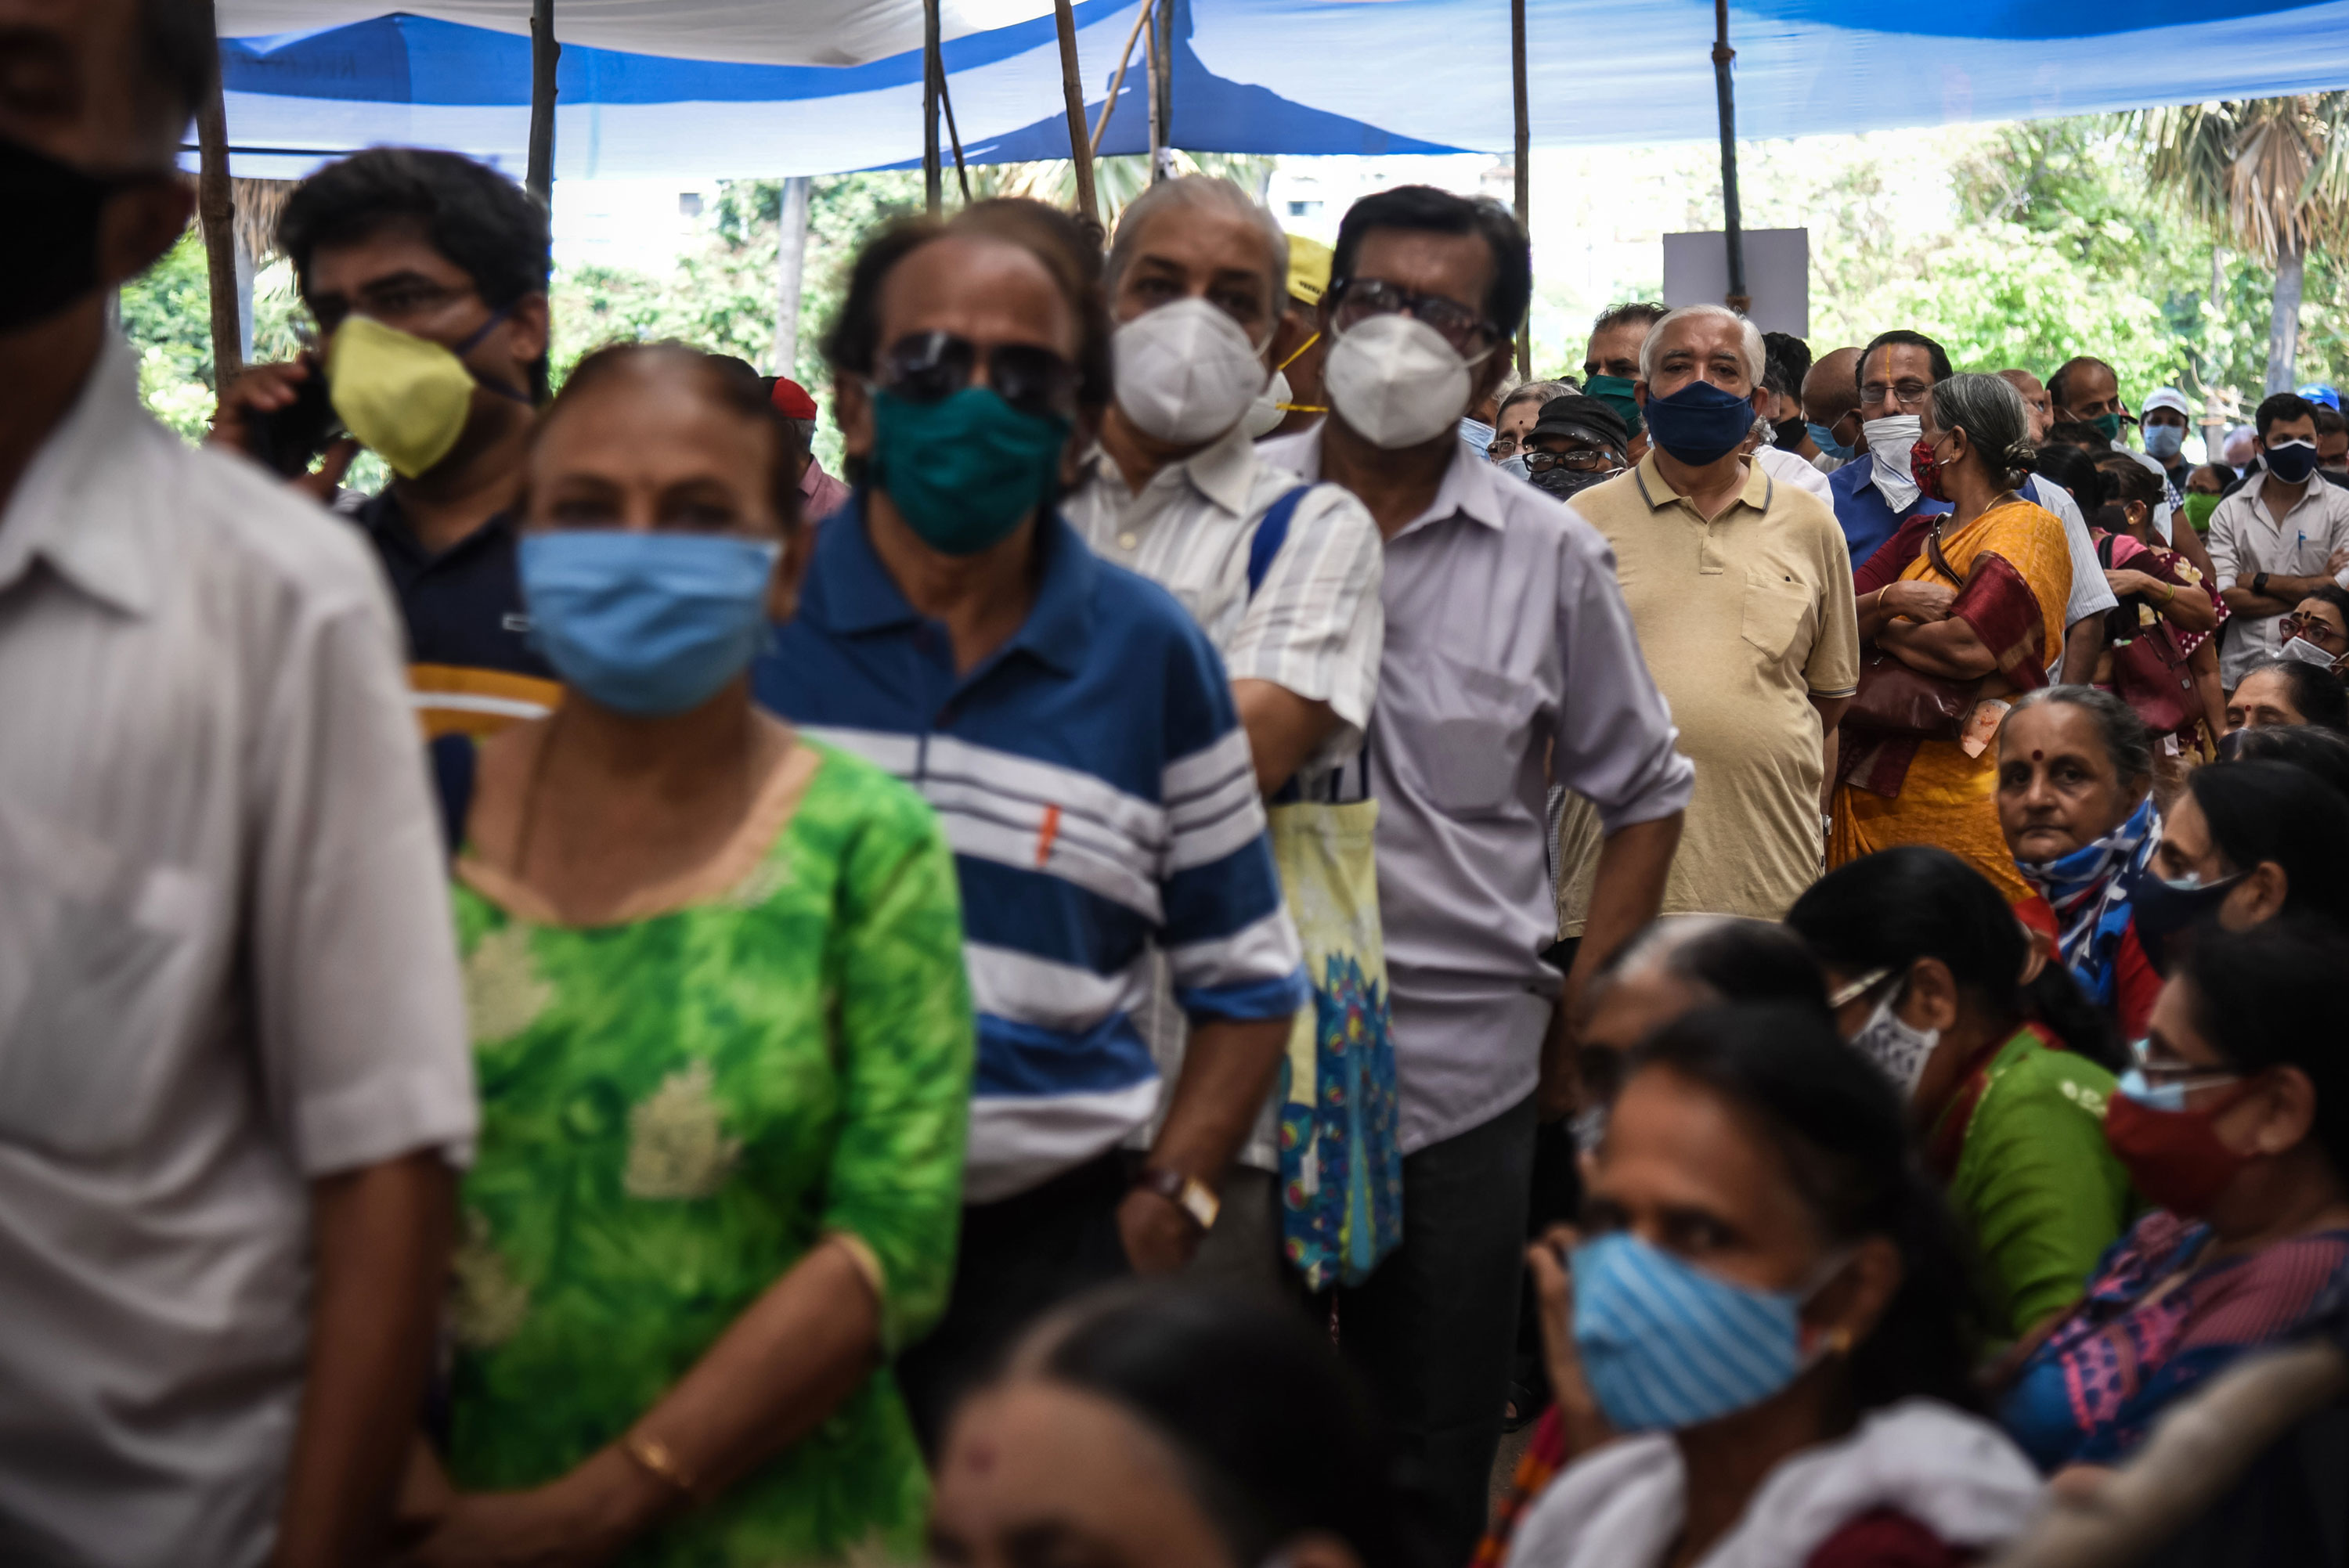 People wait to receive a Covid-19 vaccination on April 29 in Mumbai, India.